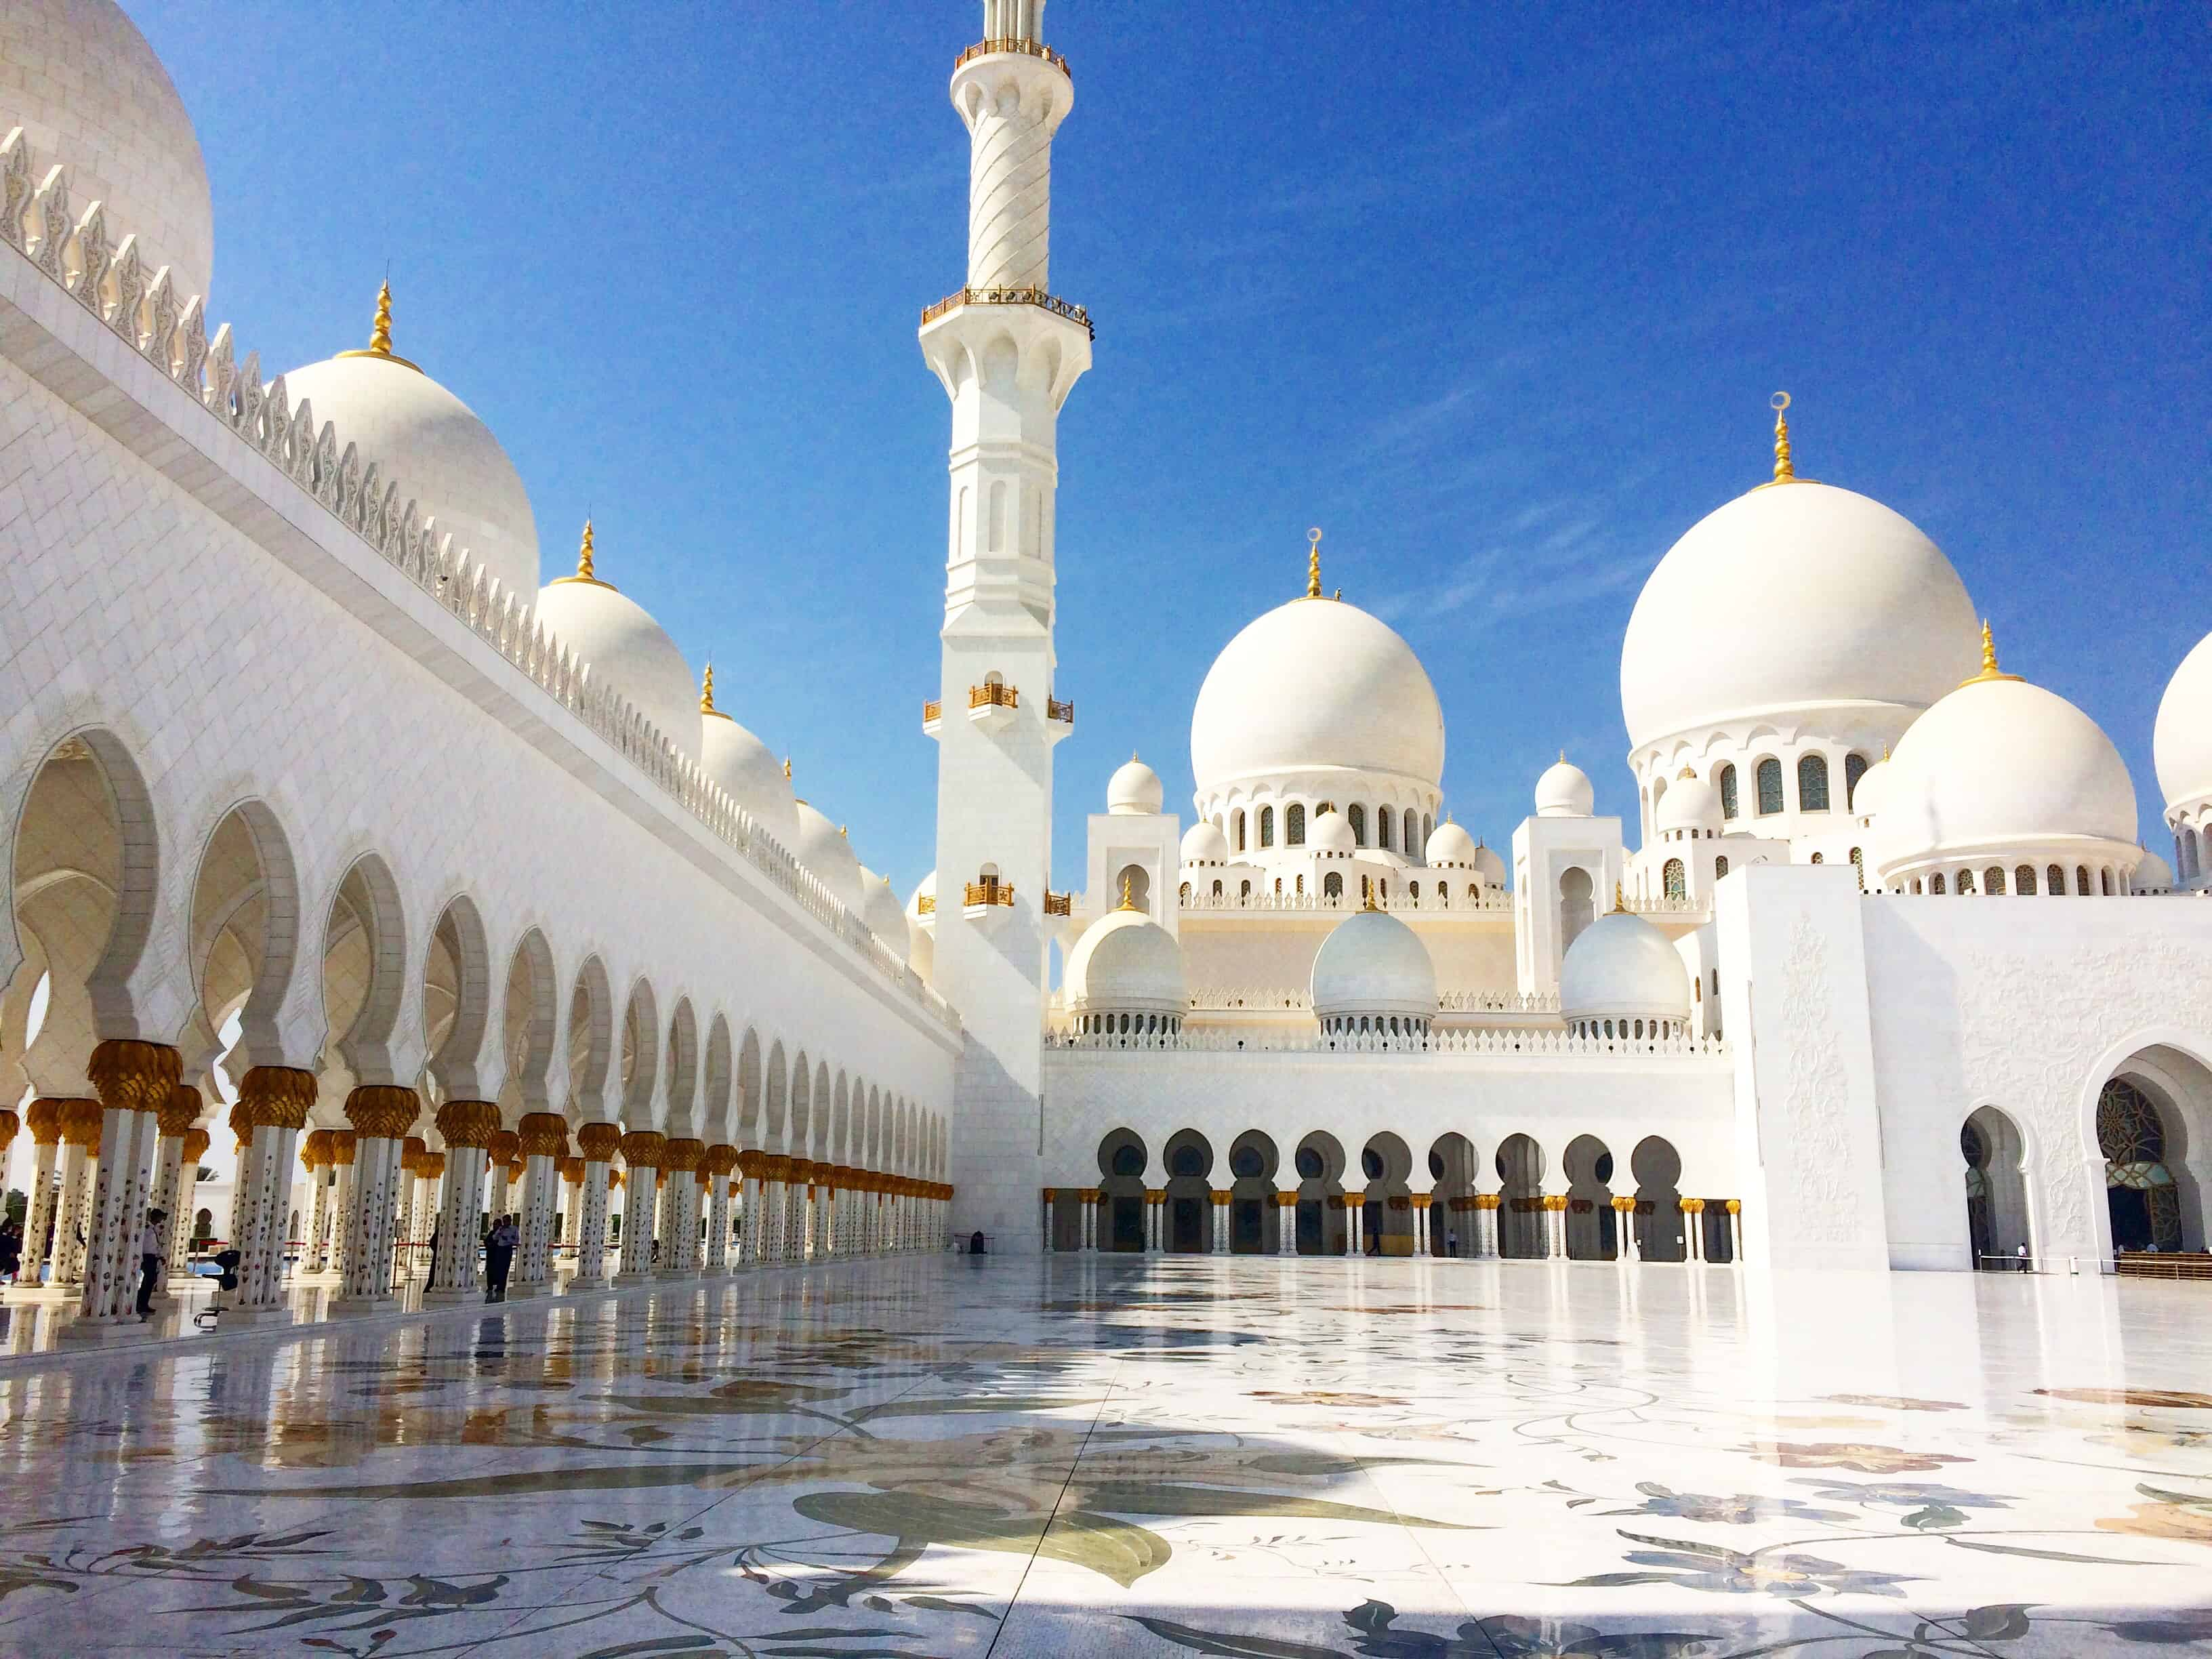 Mosque: Visiting Sheikh Zayed Grand Mosque In Abu Dhabi From Dubai